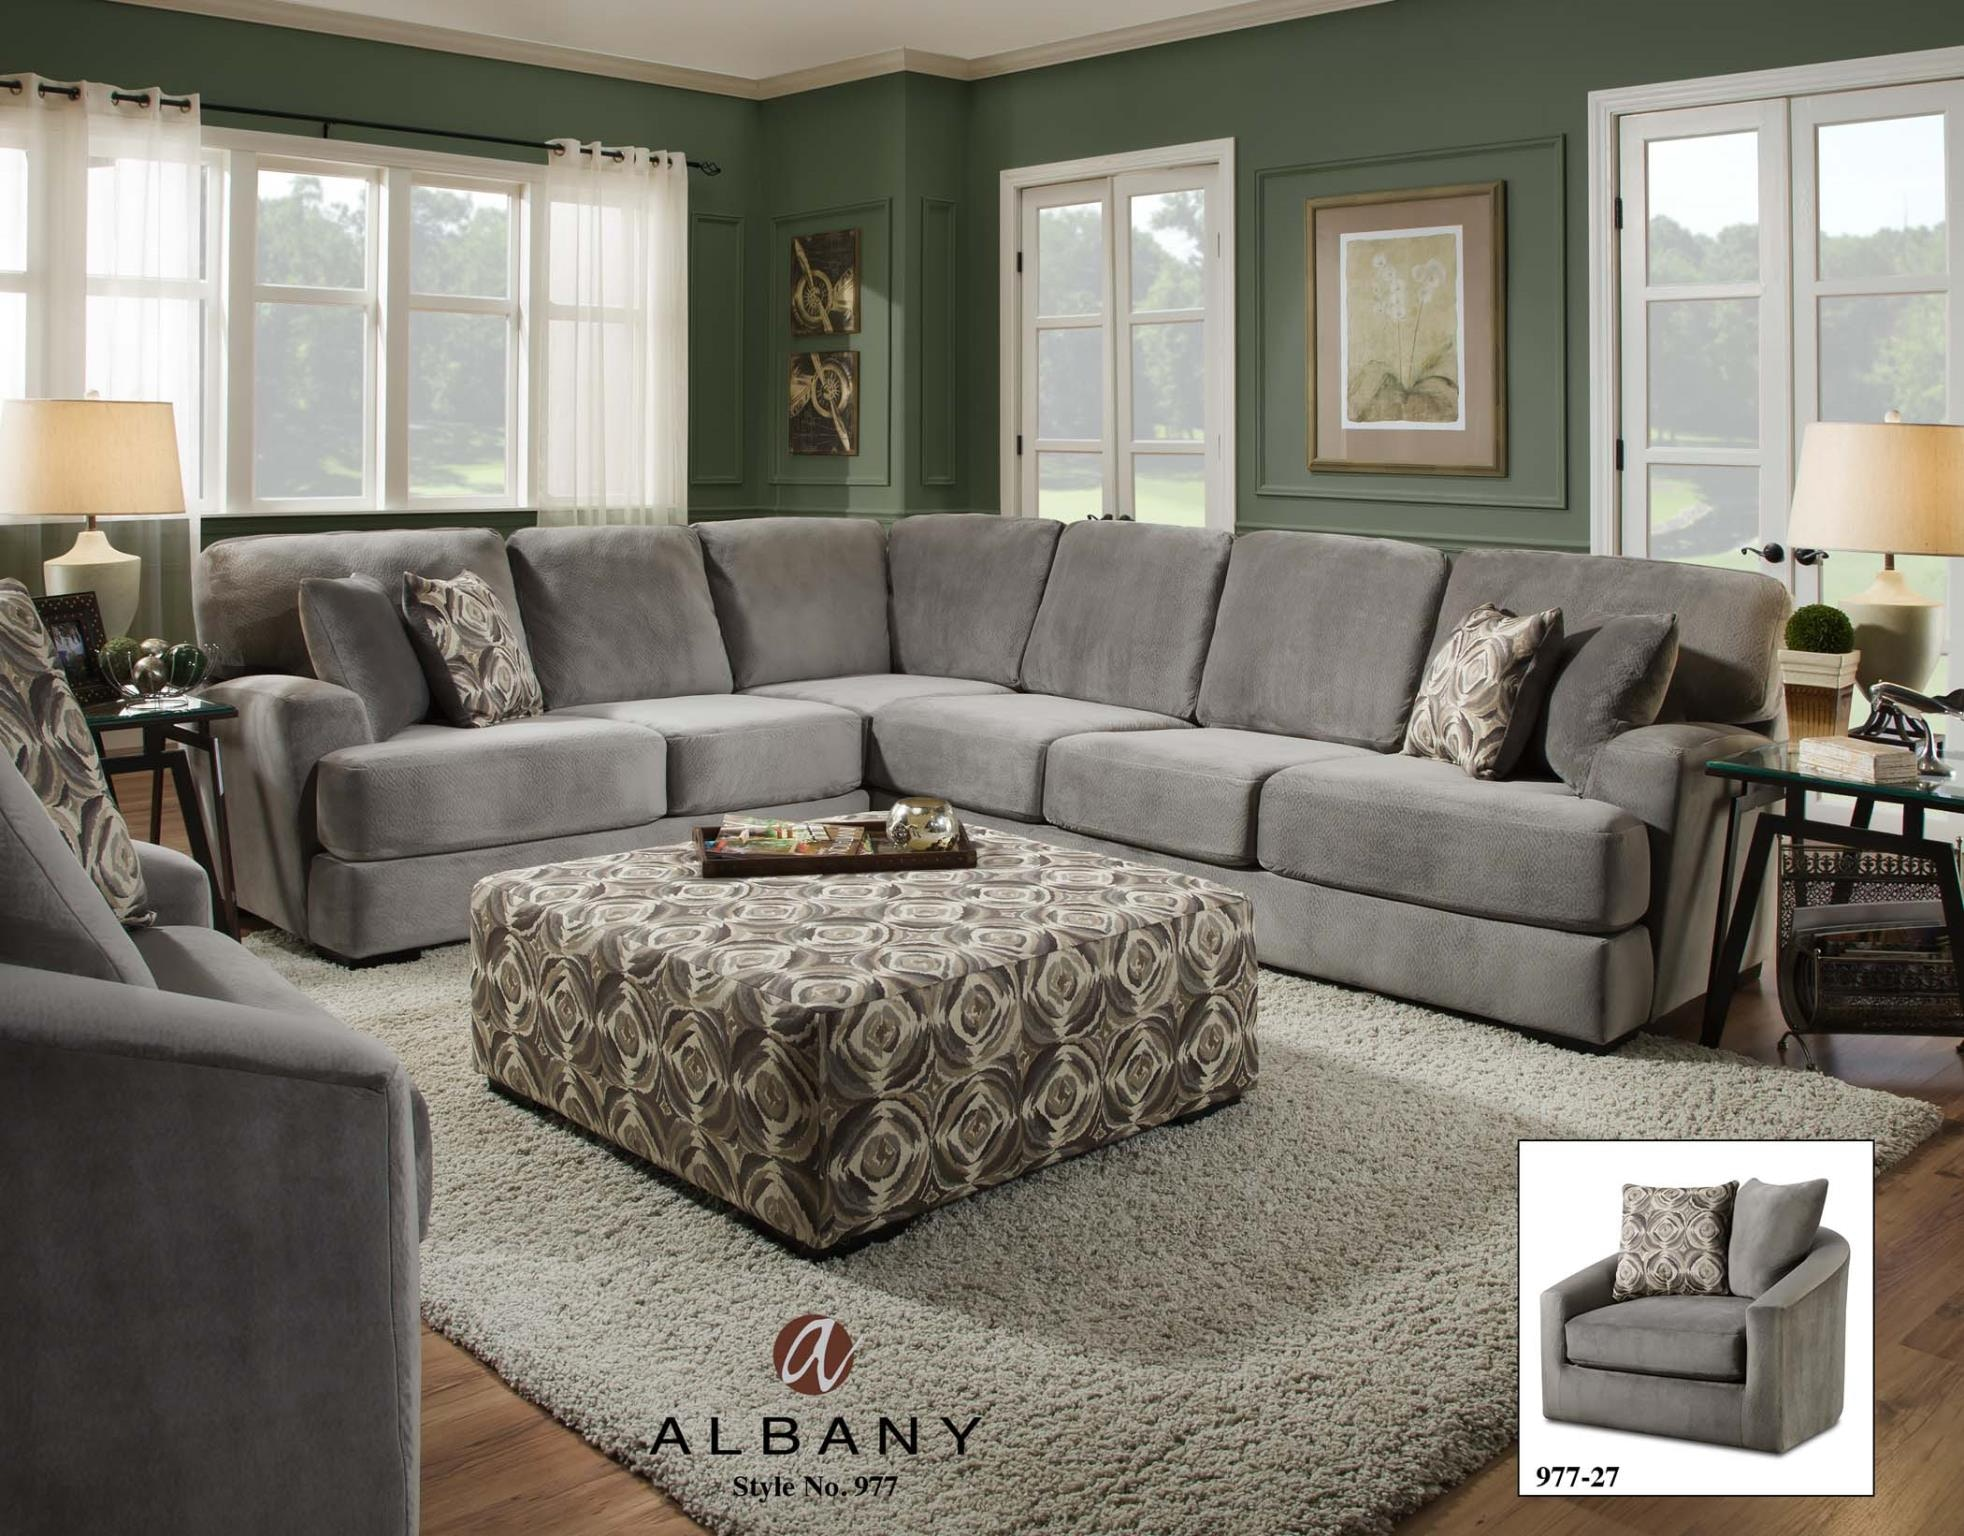 swivel chair in living room covers for reception albany 977 27 feceras furniture at mattress